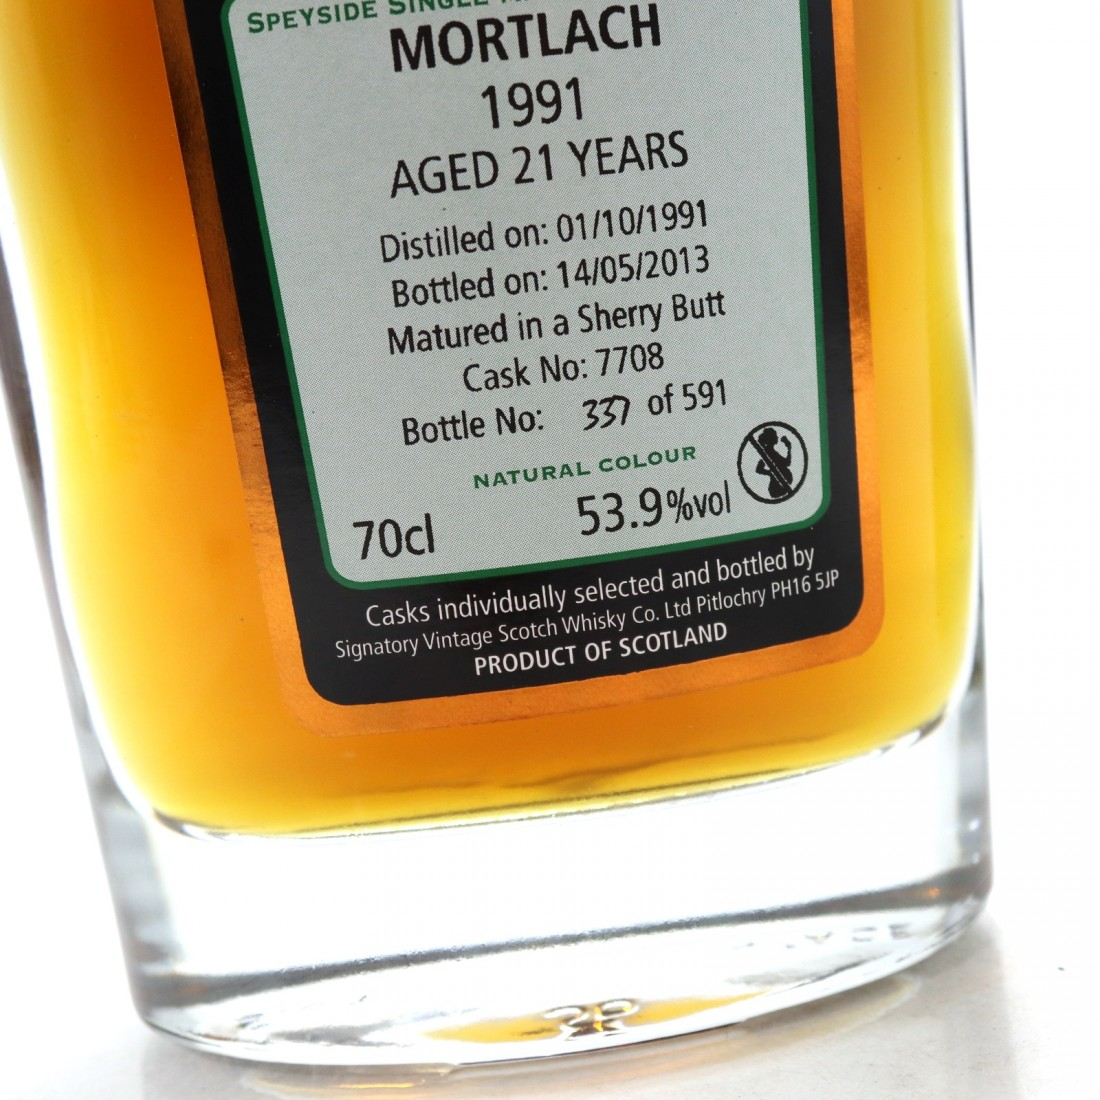 Mortlach 1991 Signatory Vintage 21 Year Old Cask Strength